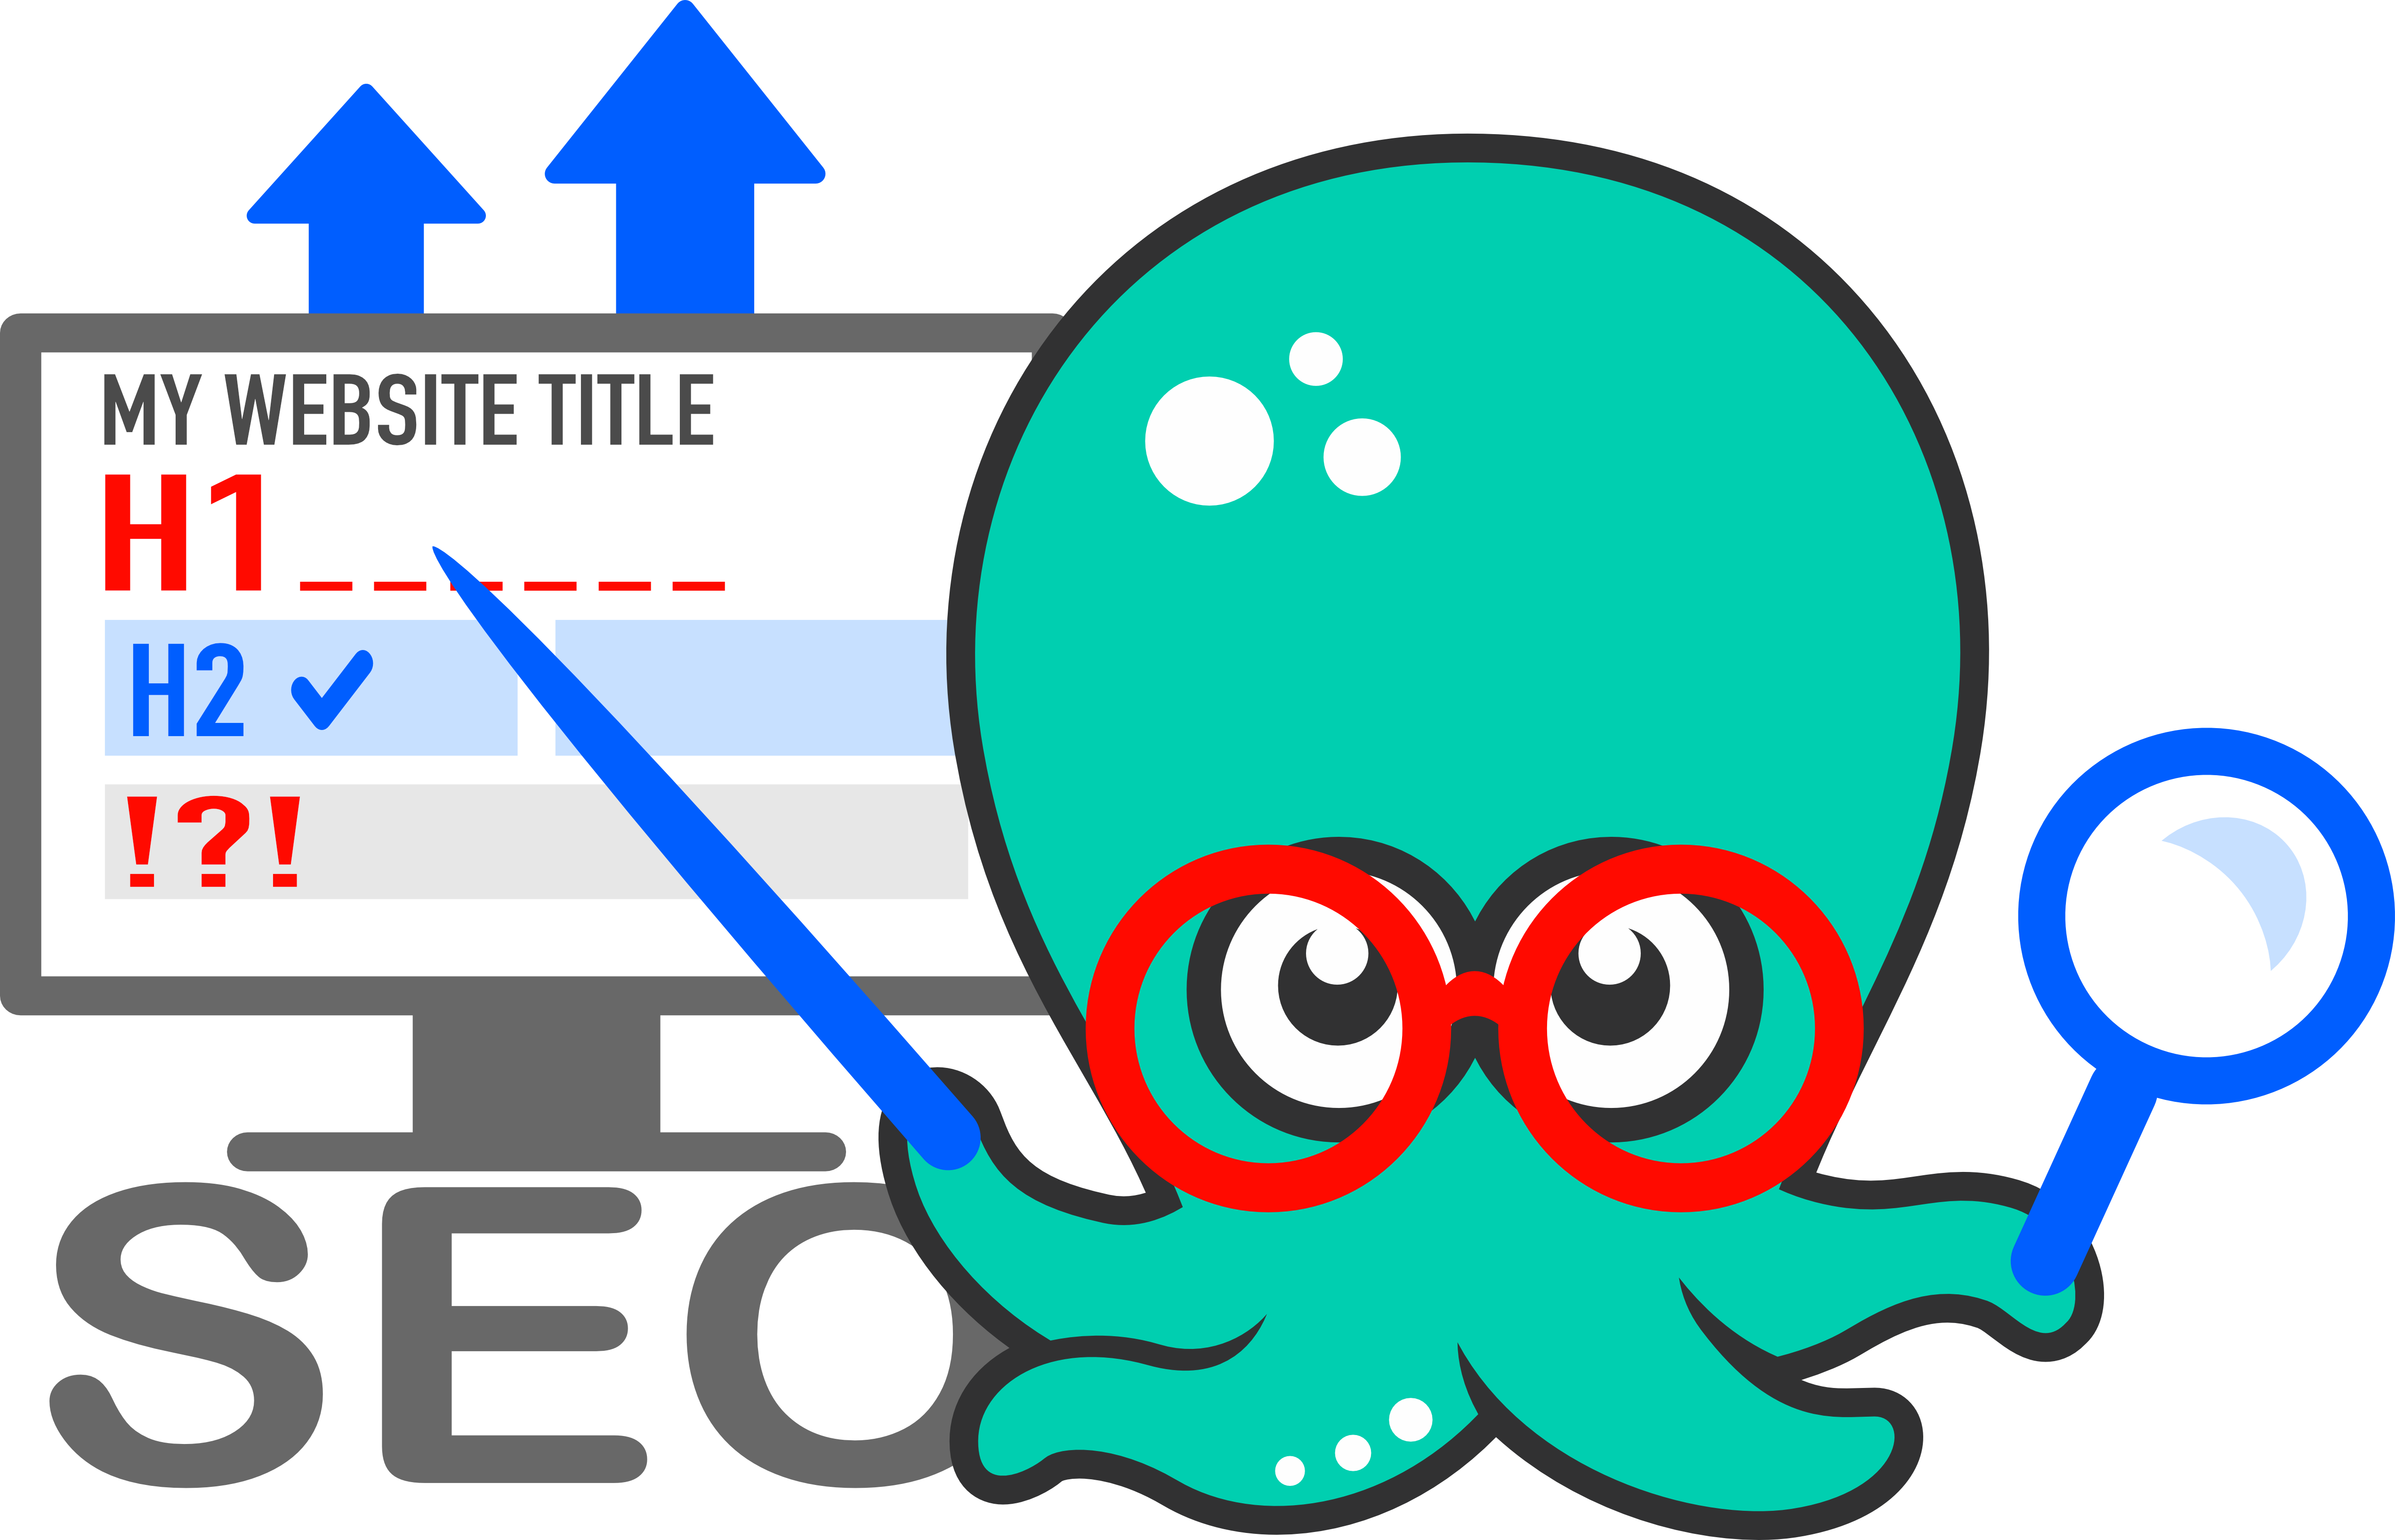 Website Structure and SEO Basics